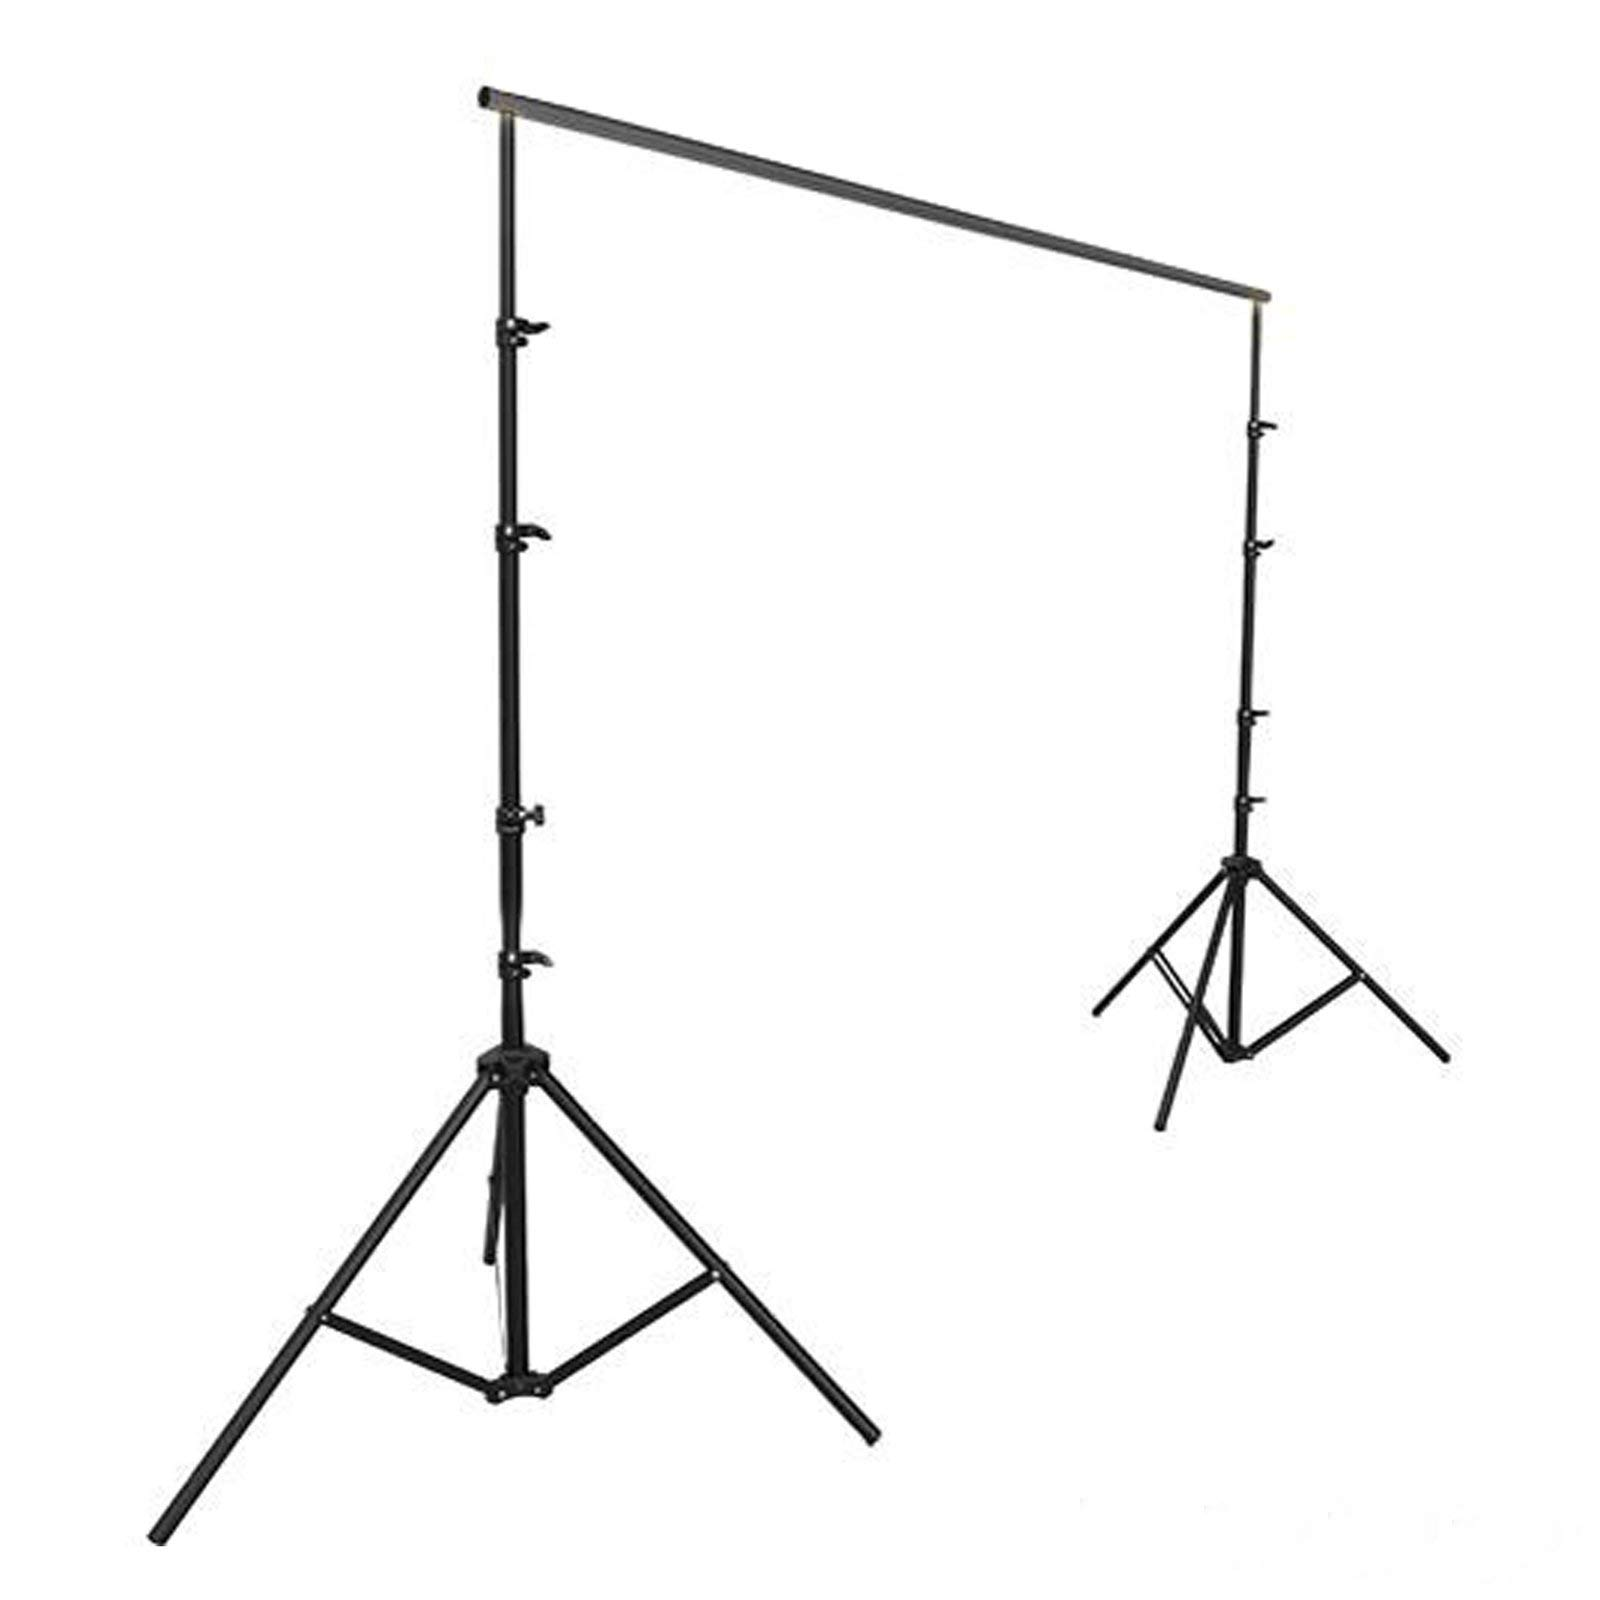 Efavormart 12ft x12ft Heavy Duty Pipe and Drape Kit Wedding Photography Backdrop Stand by Efavormart.com (Image #1)